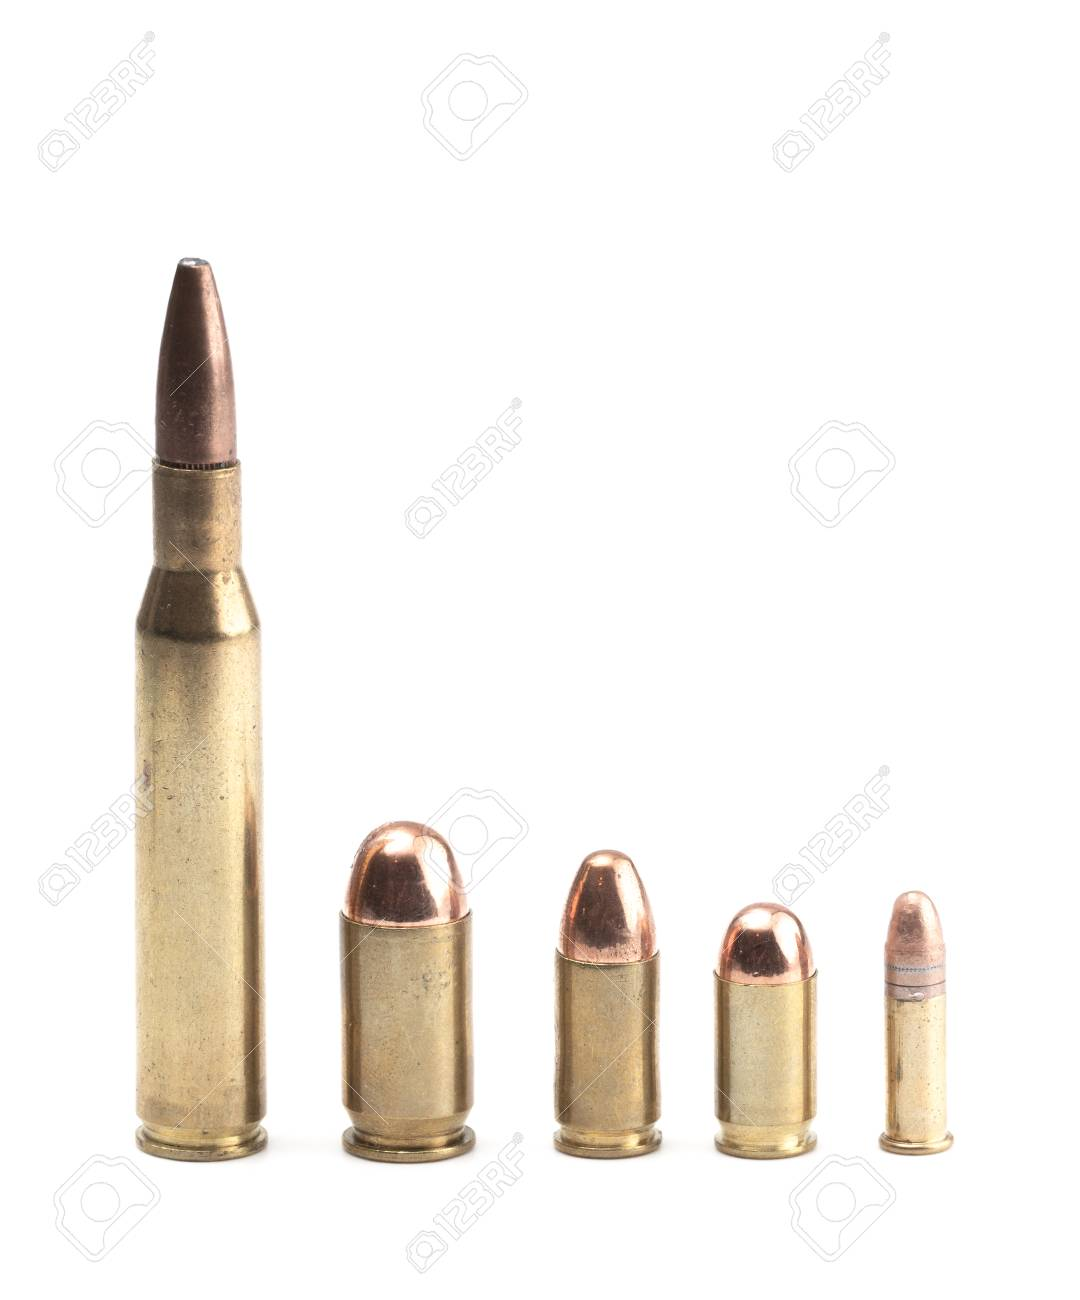 Different Bullet Sizes : different, bullet, sizes, Bullets, Various, Sizes, Shapes, Stock, Photo,, Picture, Royalty, Image., Image, 112028847.